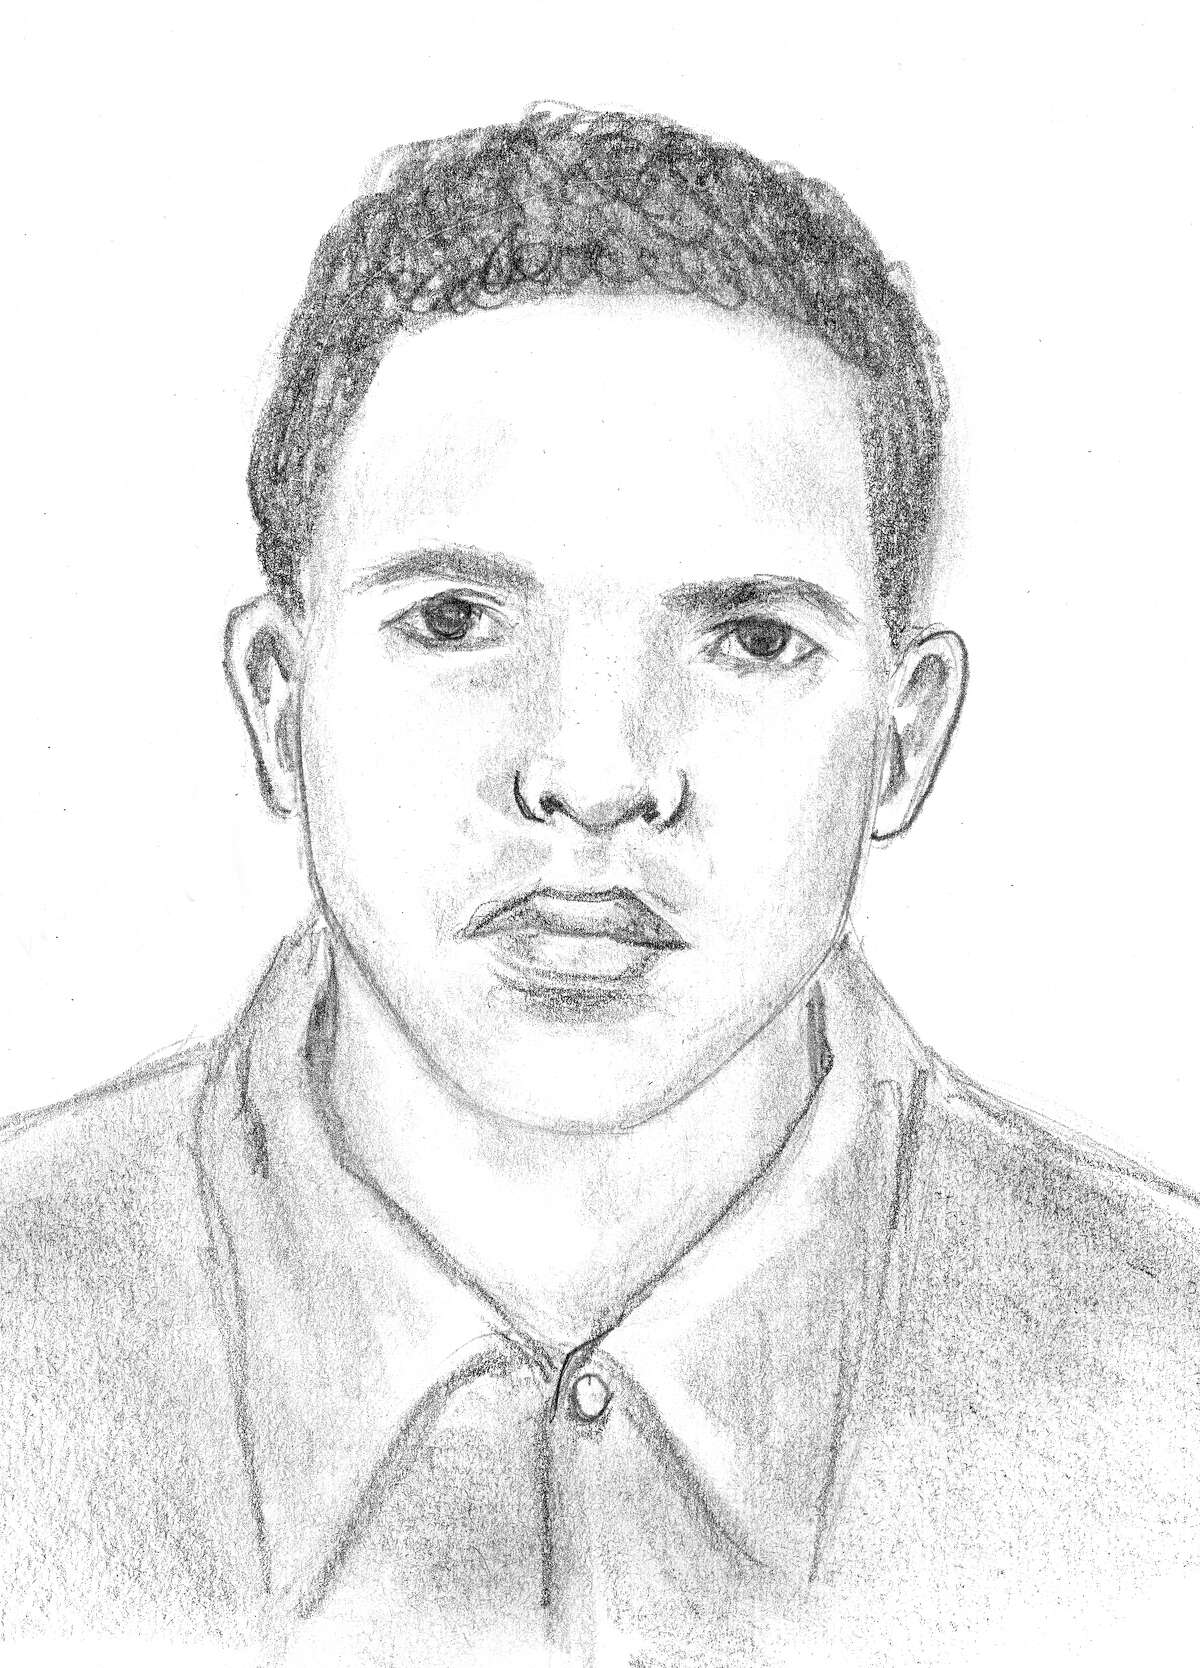 Sugar Land police are looking for this man, who allegedly stole a woman's phone outside First Colony Mall.